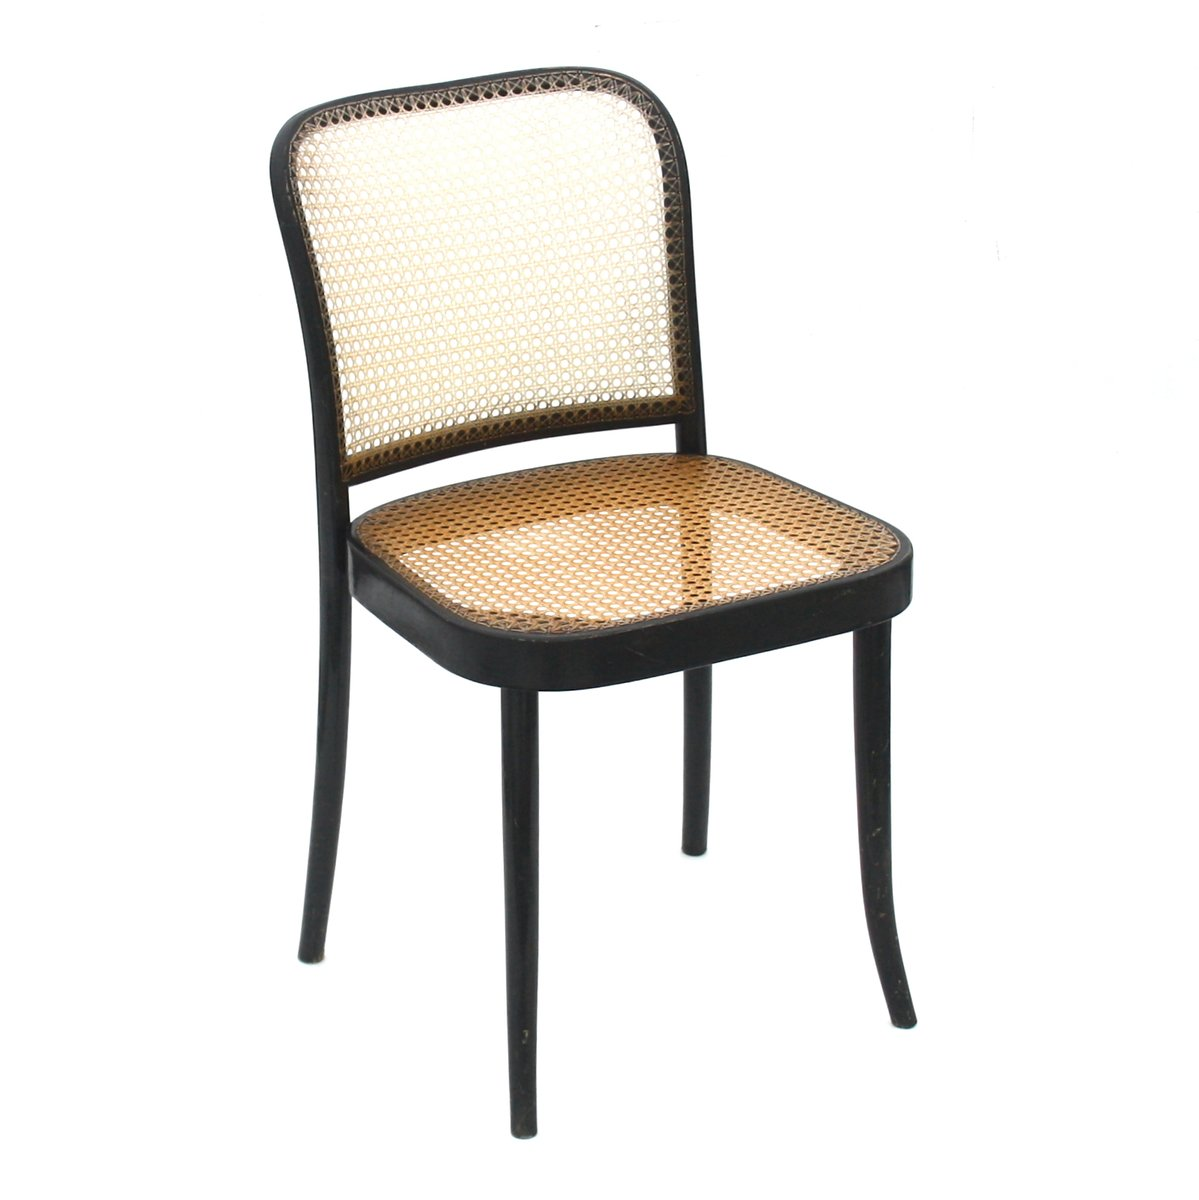 Vintage Czech Model 811 Chair From TON